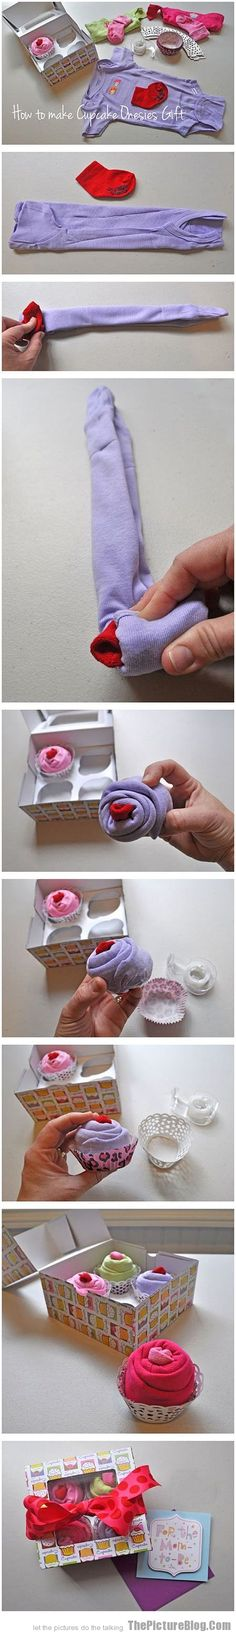 "How to make ""cupcakes"" out of onesies. Adorable for shower gift."